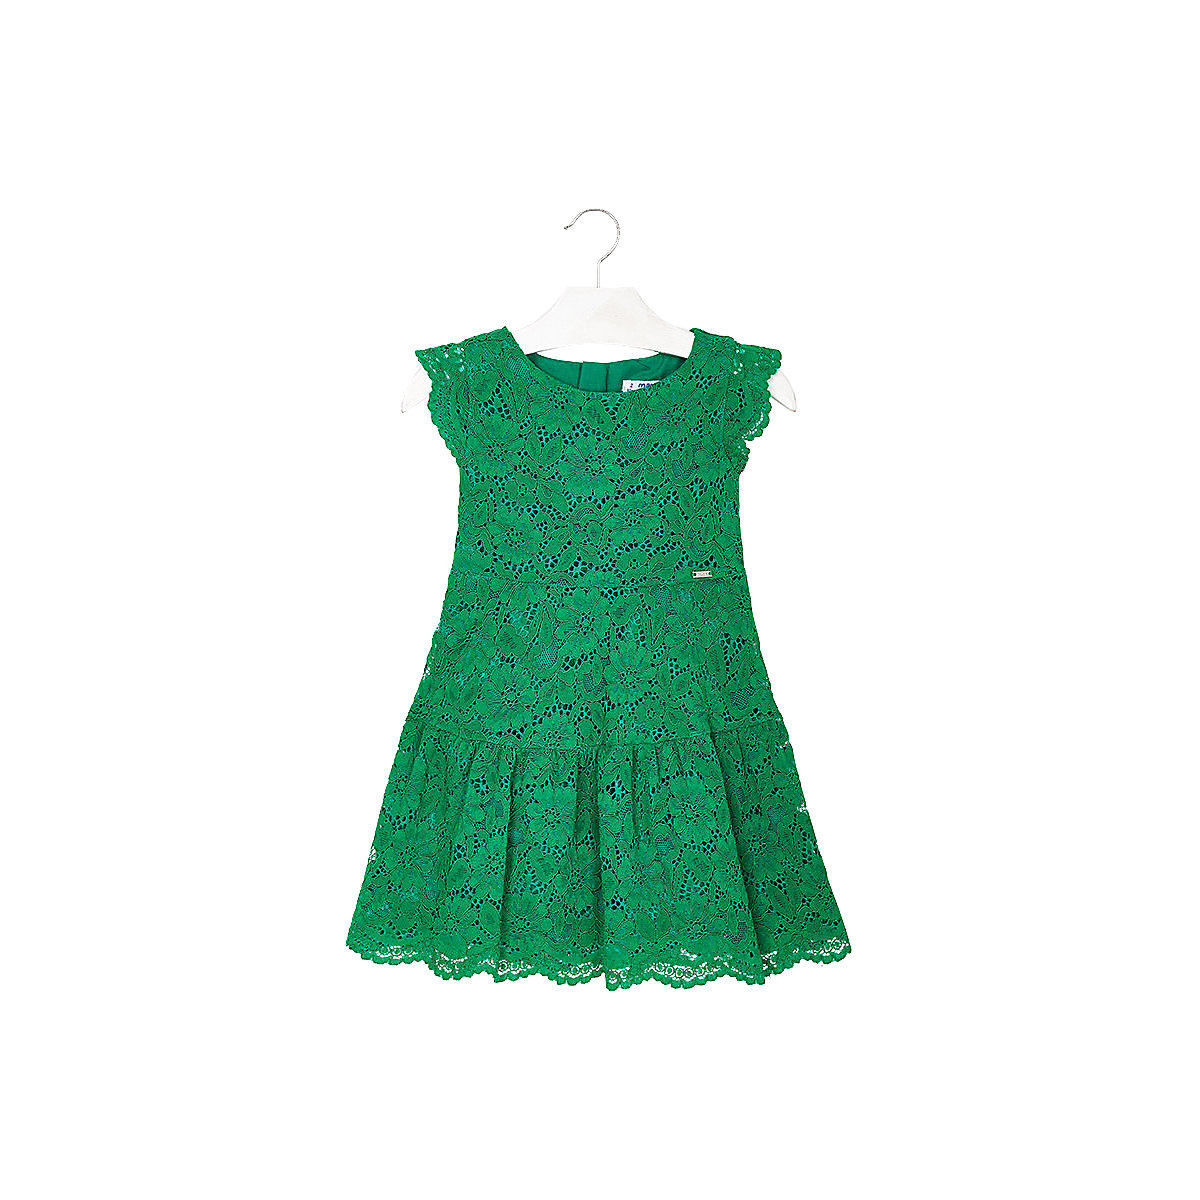 MAYORAL Dresses 10678732 Girl Children Party fitted pleated skirt Green Cotton Preppy Style Floral Knee-Length Short Sleeve navy velvet mini pleated skirt